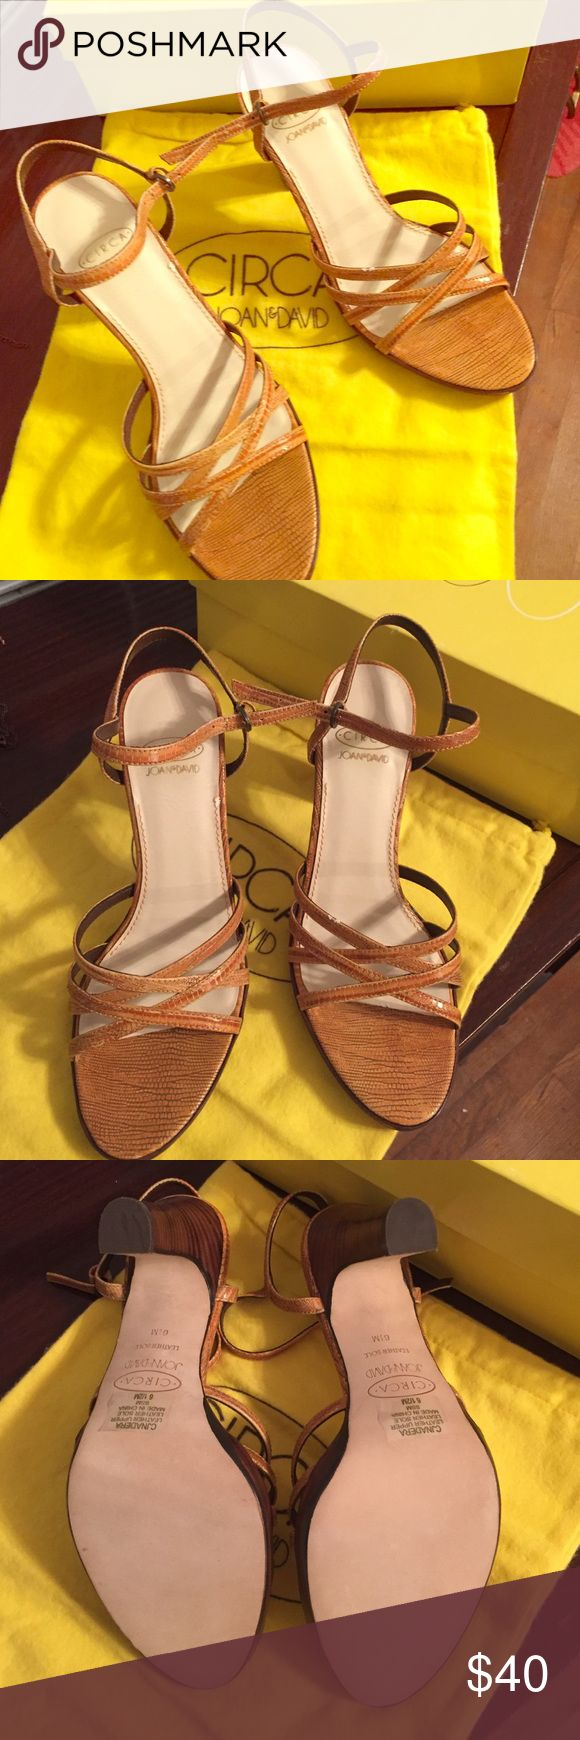 Circa Joan & David brown leather high heels NWOT Never worn gorgeous brown leather size 6 1/2 Circa Joan & David heels with original box and dust bag. Circa Joan & David  Shoes Heels